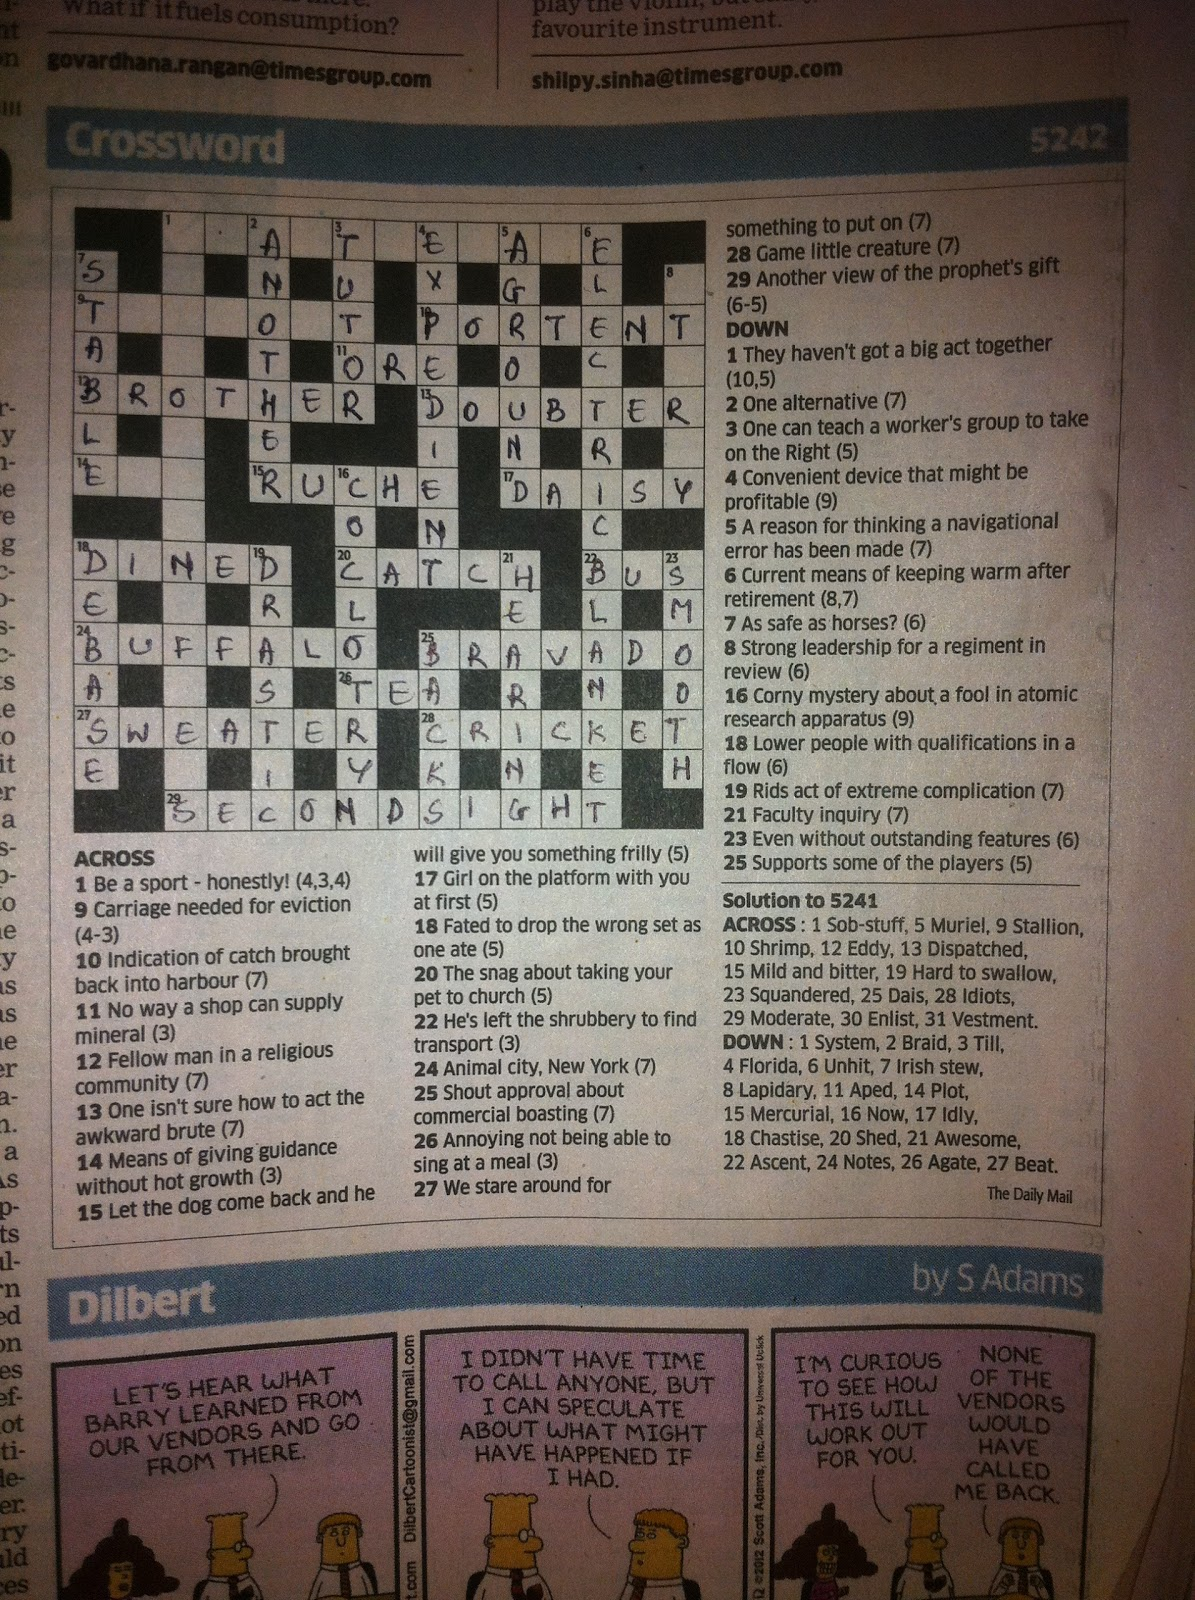 Cryptic crosswords for Portent in crossword